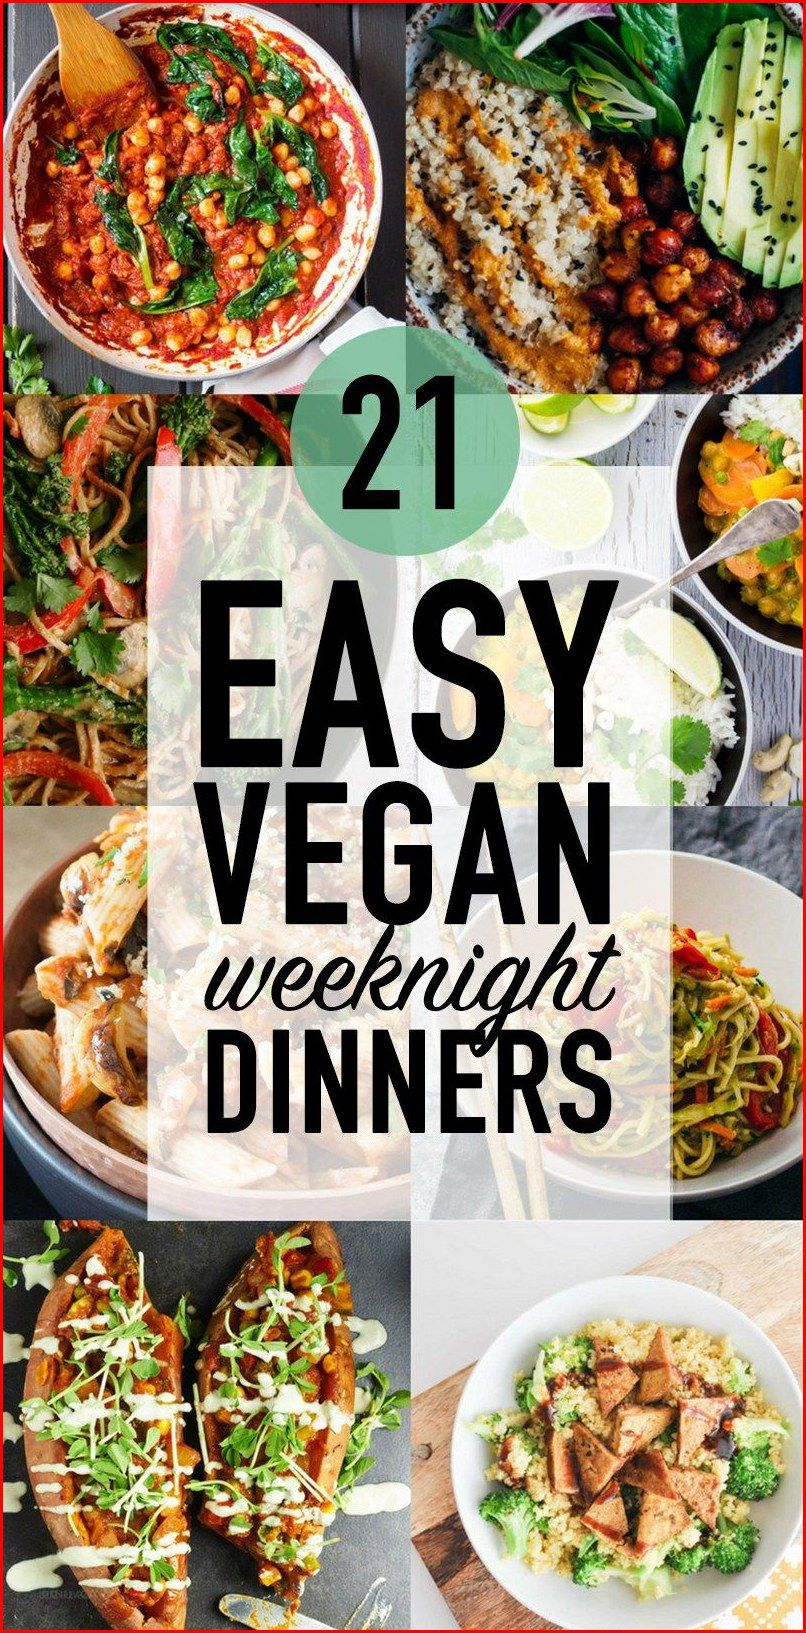 Recipes Straightforward Practical Daily Meals To Accomodate Your Budget Or Even A Active Life